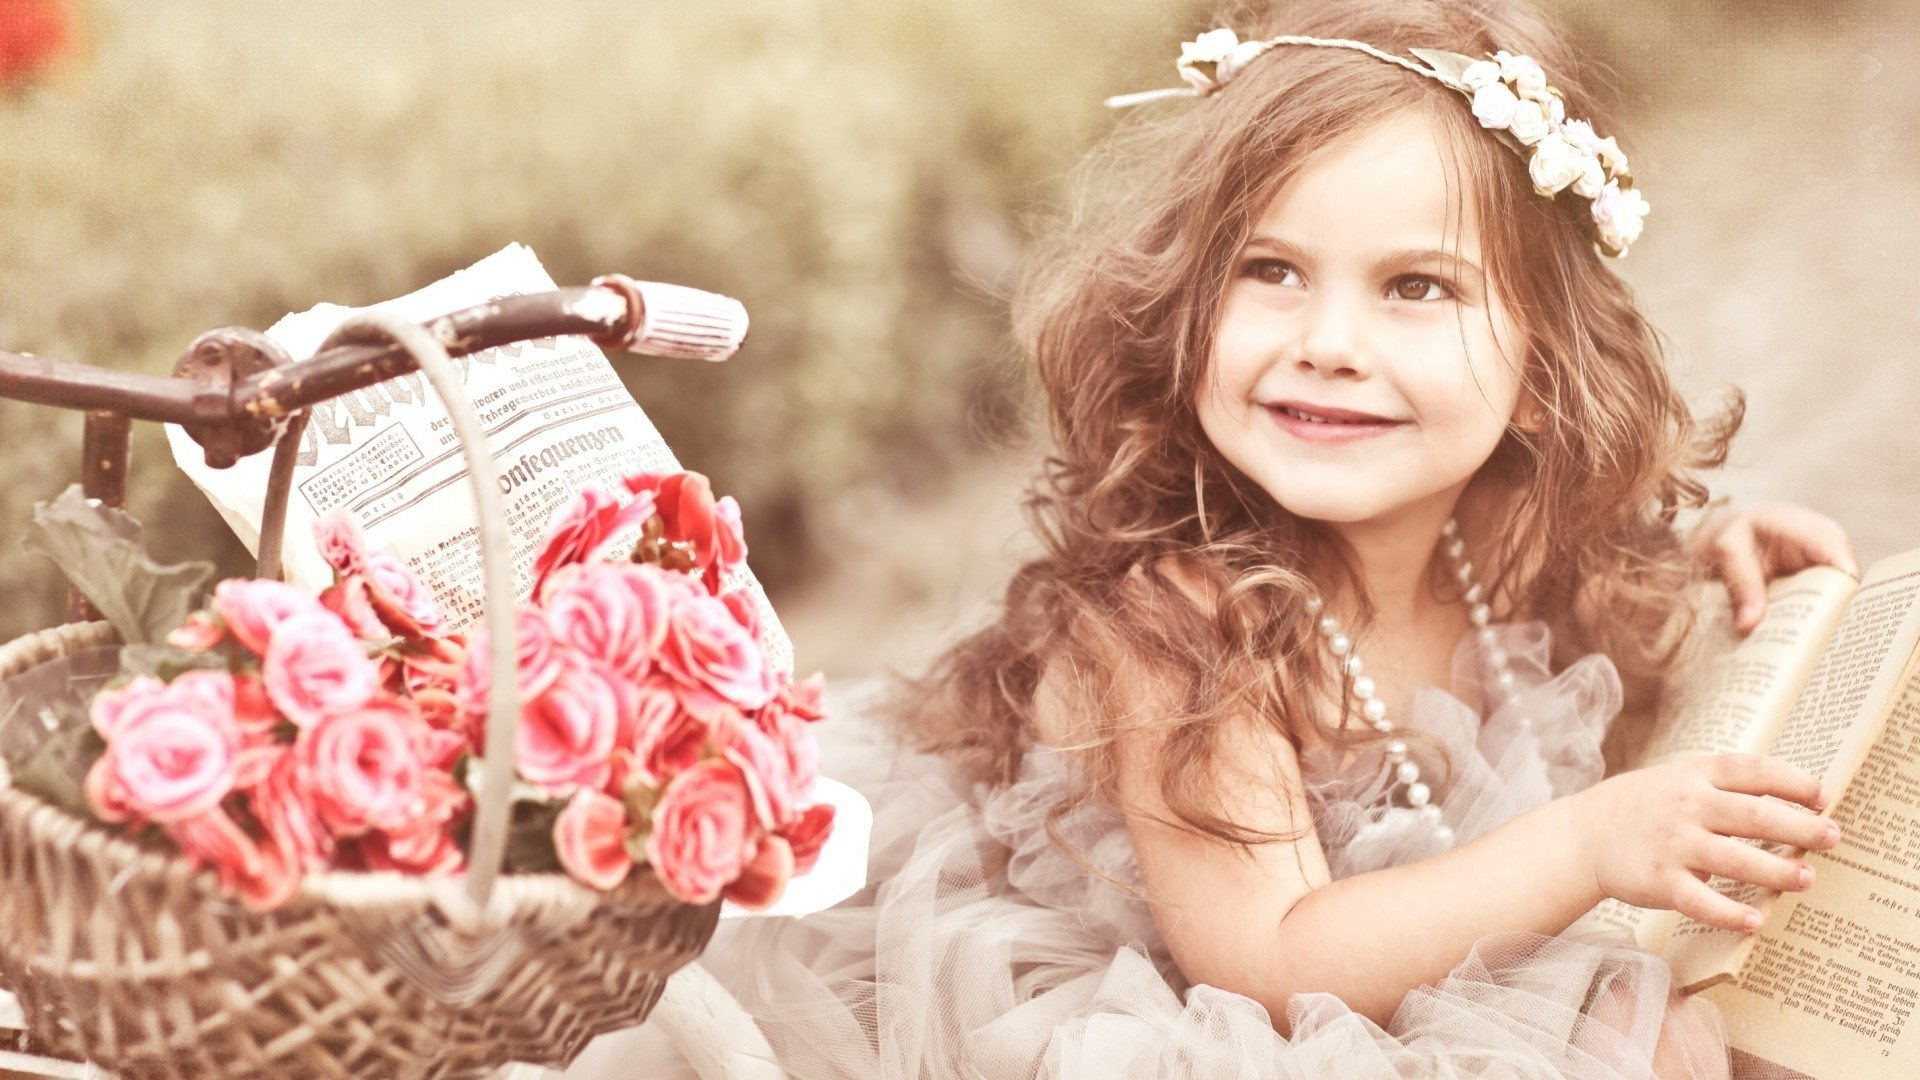 beautiful_baby_with_book-1920x1080